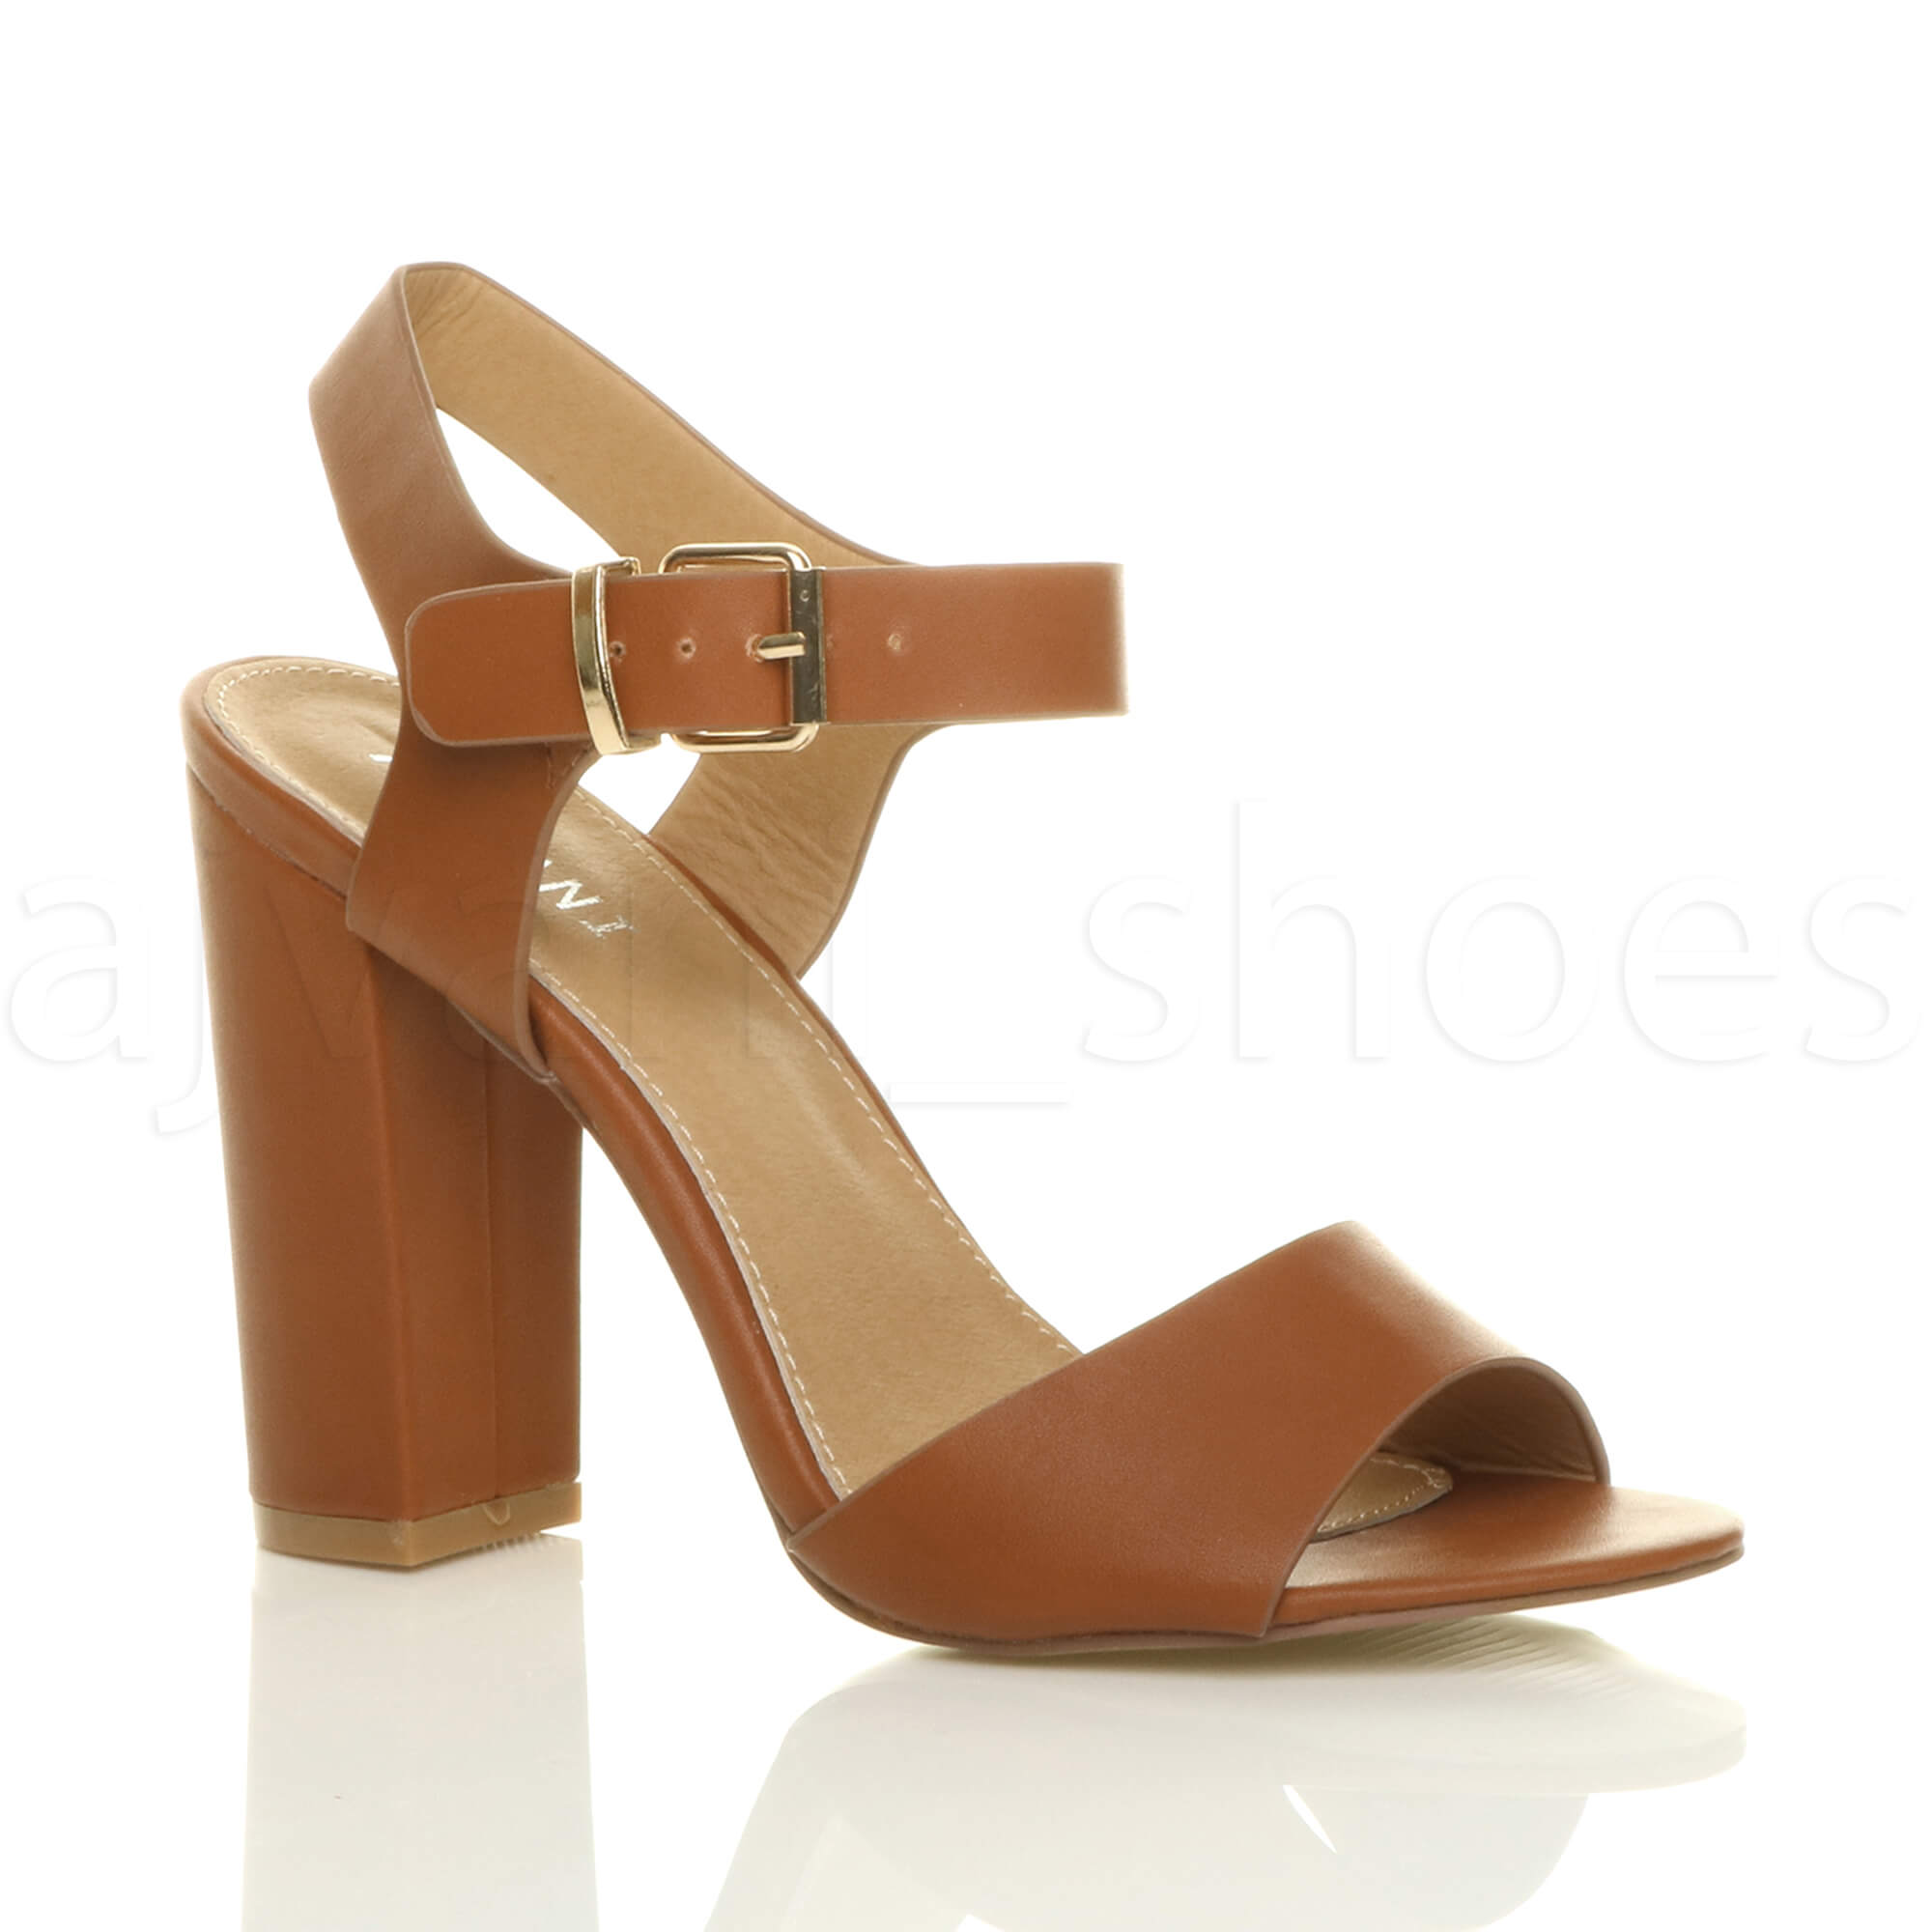 Shop for block heel sandals at shopnew-5uel8qry.cf Visit shopnew-5uel8qry.cf to find clothing, accessories, shoes, cosmetics & more. The Style of Your Life.